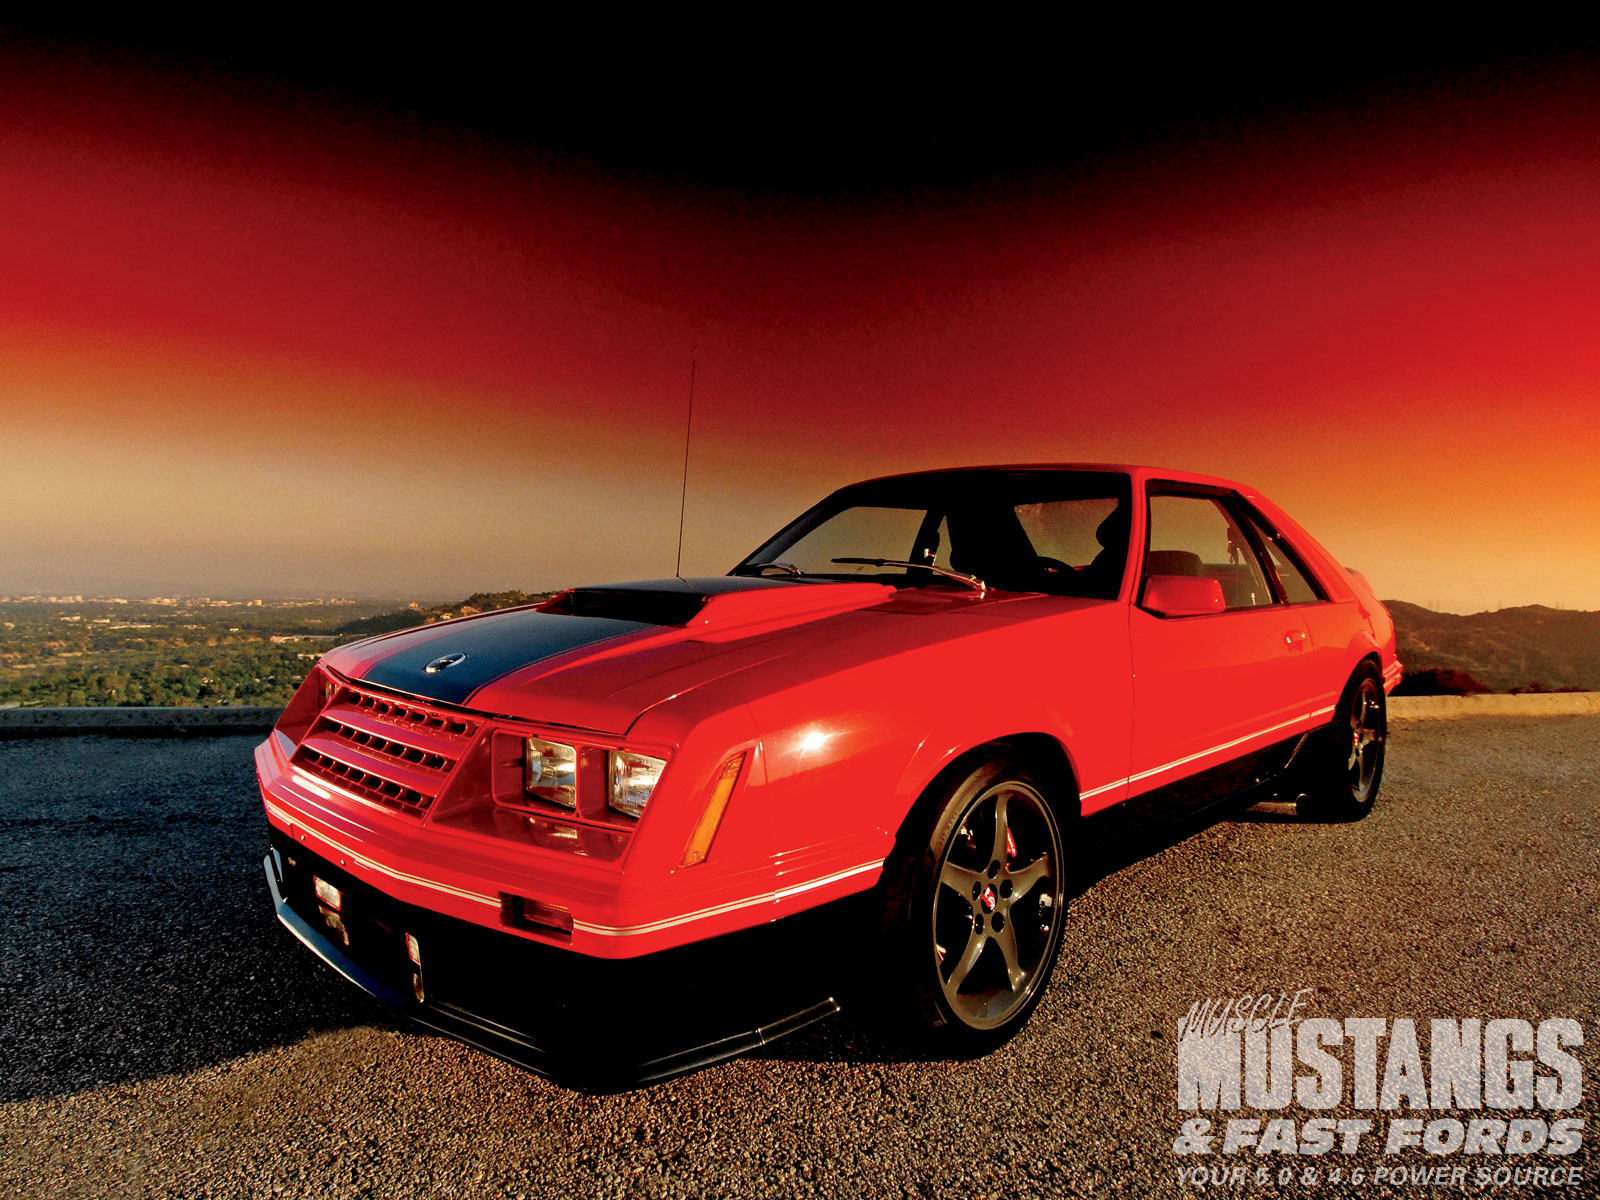 1982 Ford Mustang Gt Modified Muscle Mustangs Fast Fords